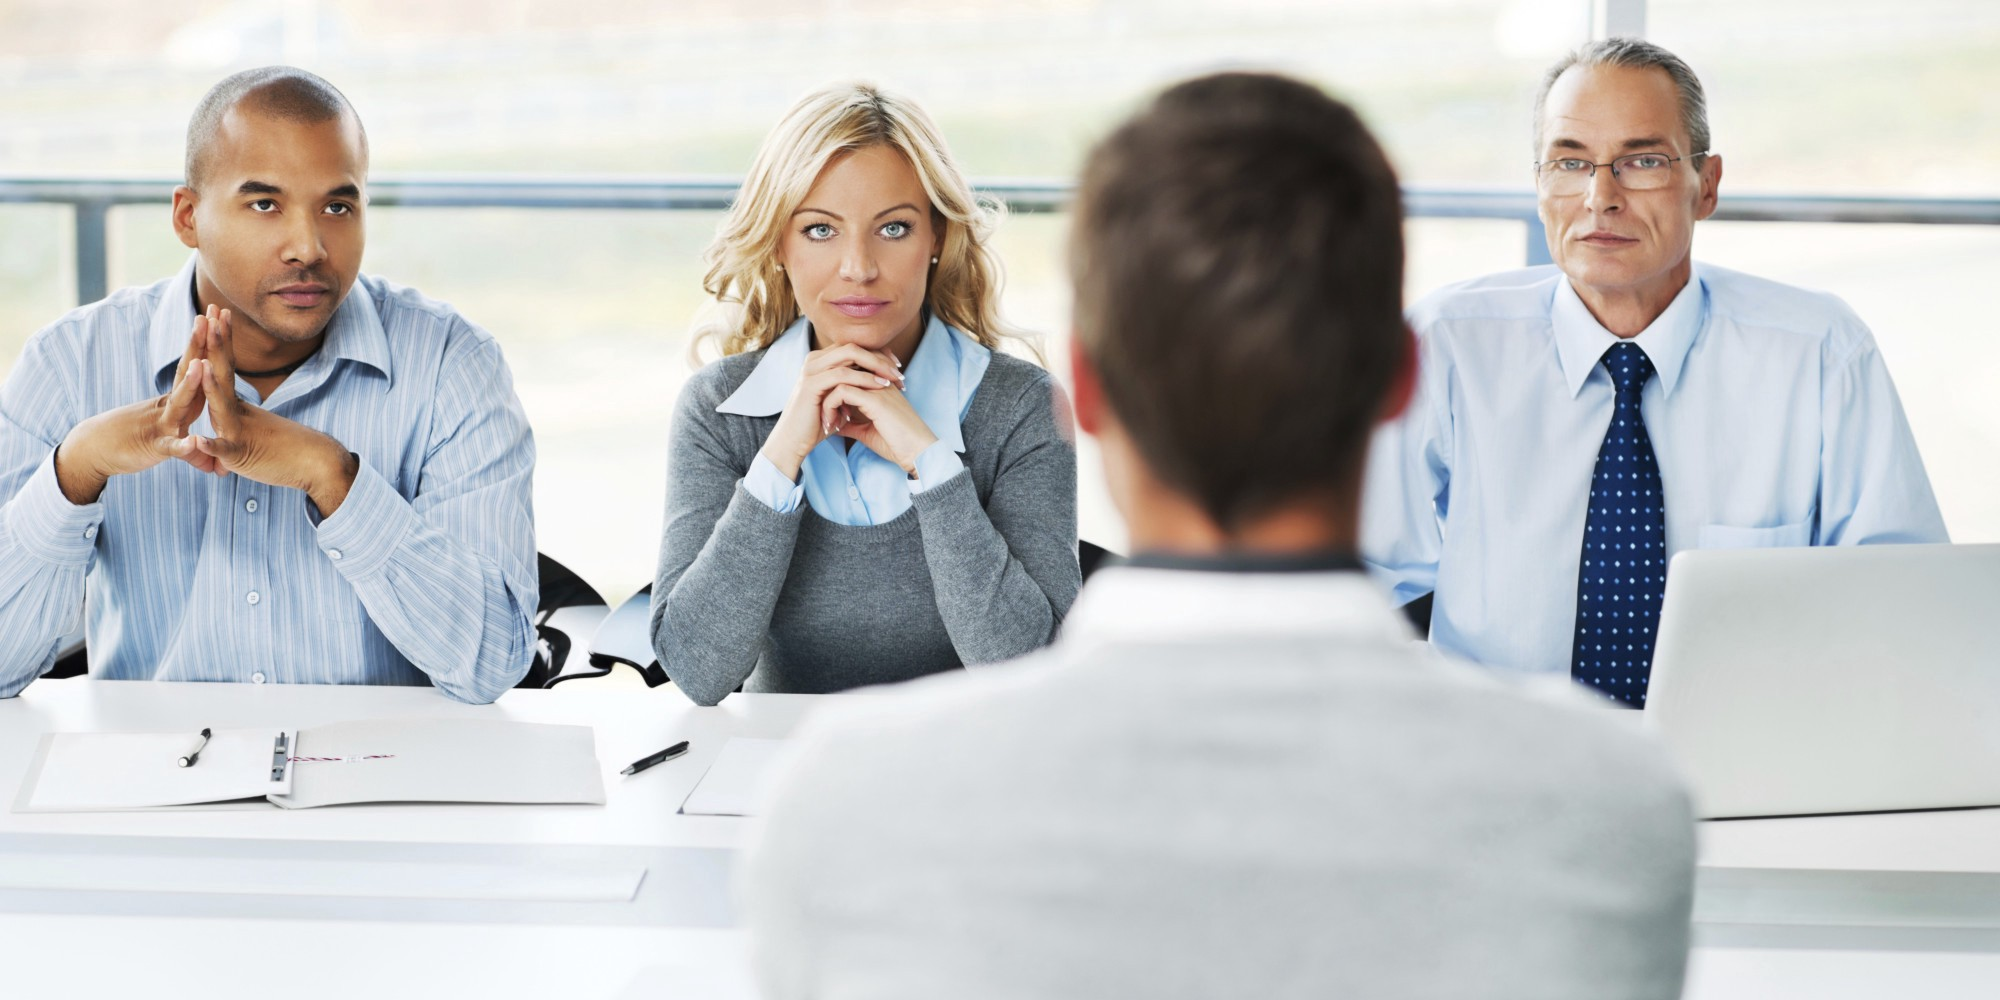 ASK to Be Hired: Three Ways to Prepare for Your Next Job Interview